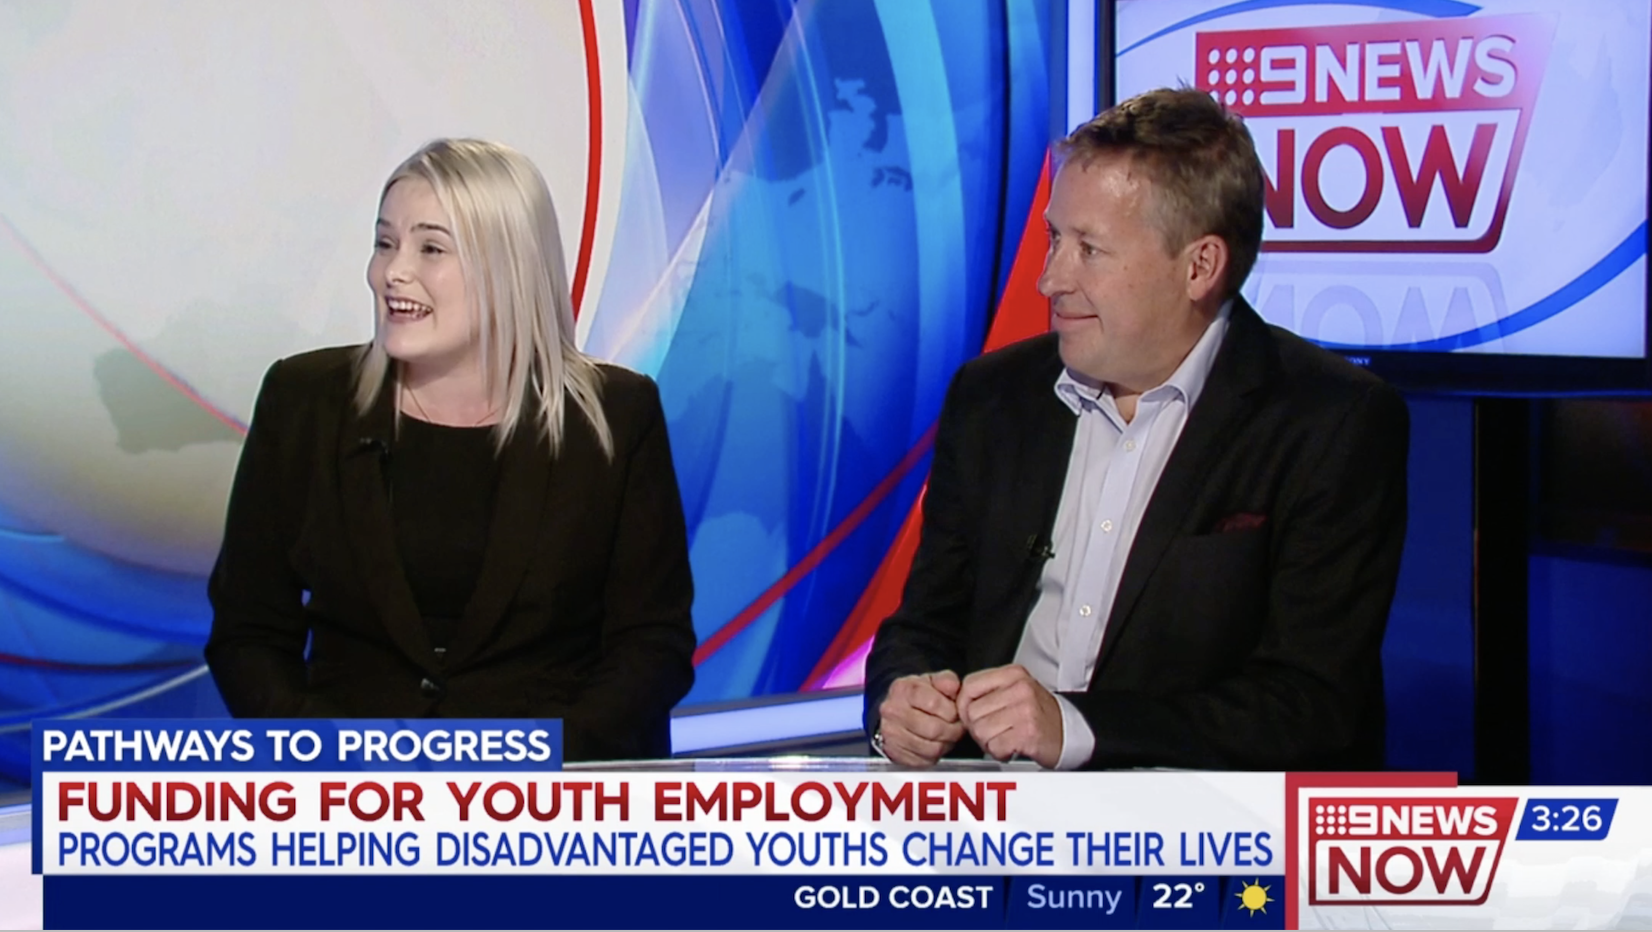 Nicholas Wyman & Alicia Doolan w/ Belinda Russell on Citi Pathways to Progress Initiative – 9NewsNOW